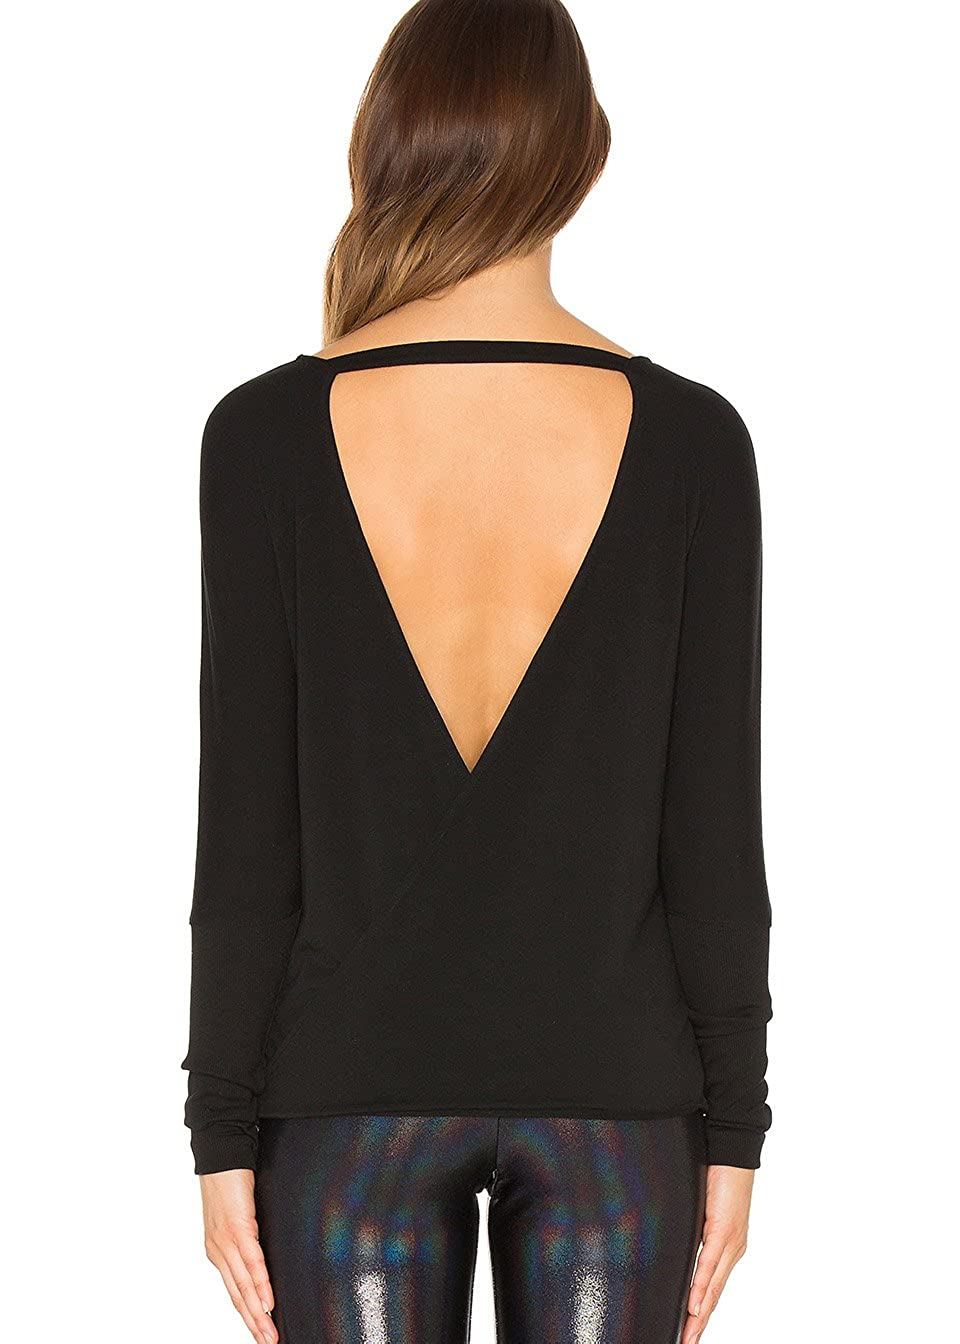 Bestisun Womens Long Sleeve Back Cut Out Top Open Back Crossover Workout Casual Shirt